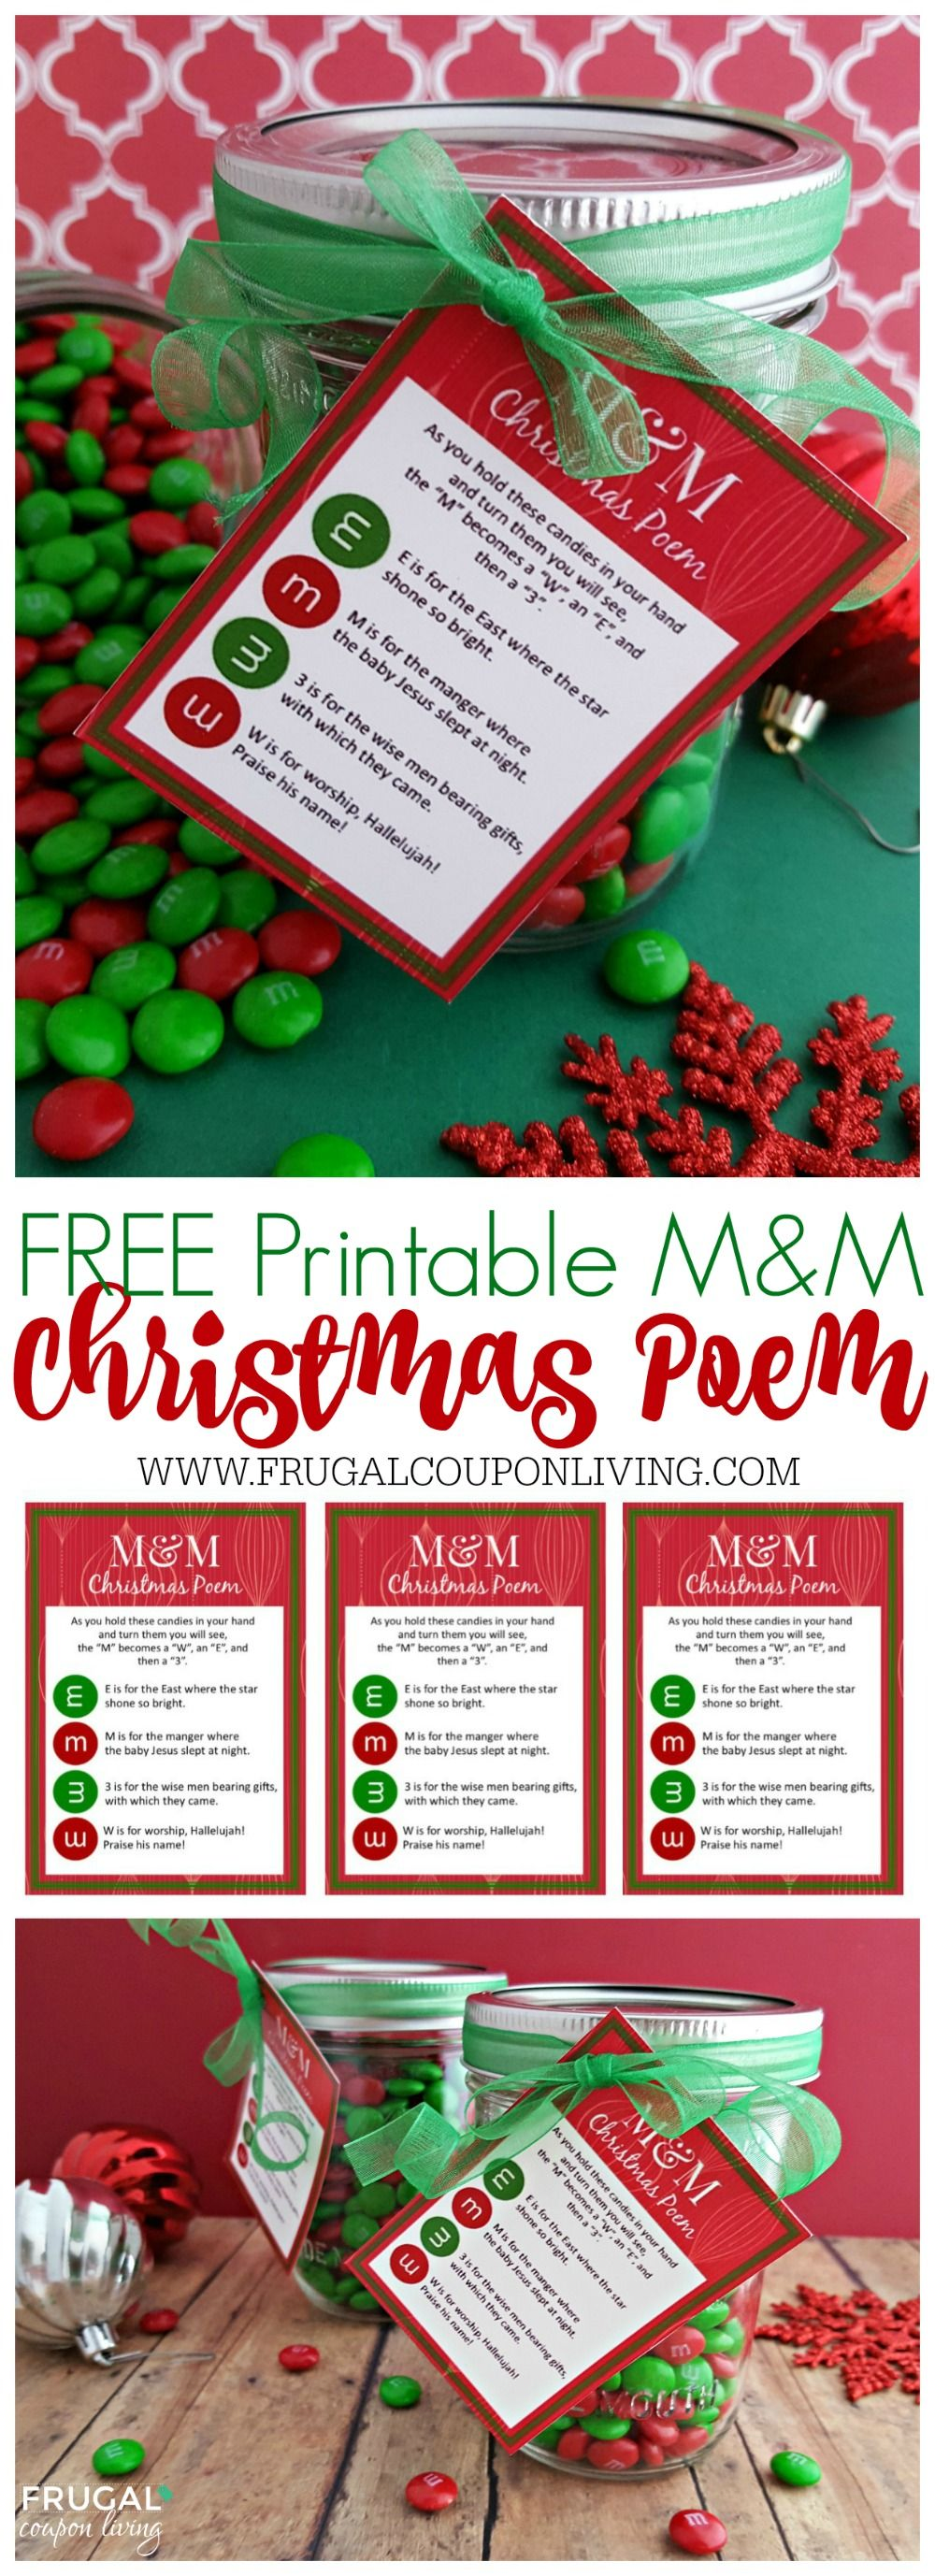 m m christmas poem and printable gift tag the star frugal coupon living s m m christmas poem and printable gift tag the perfect homemade christmas